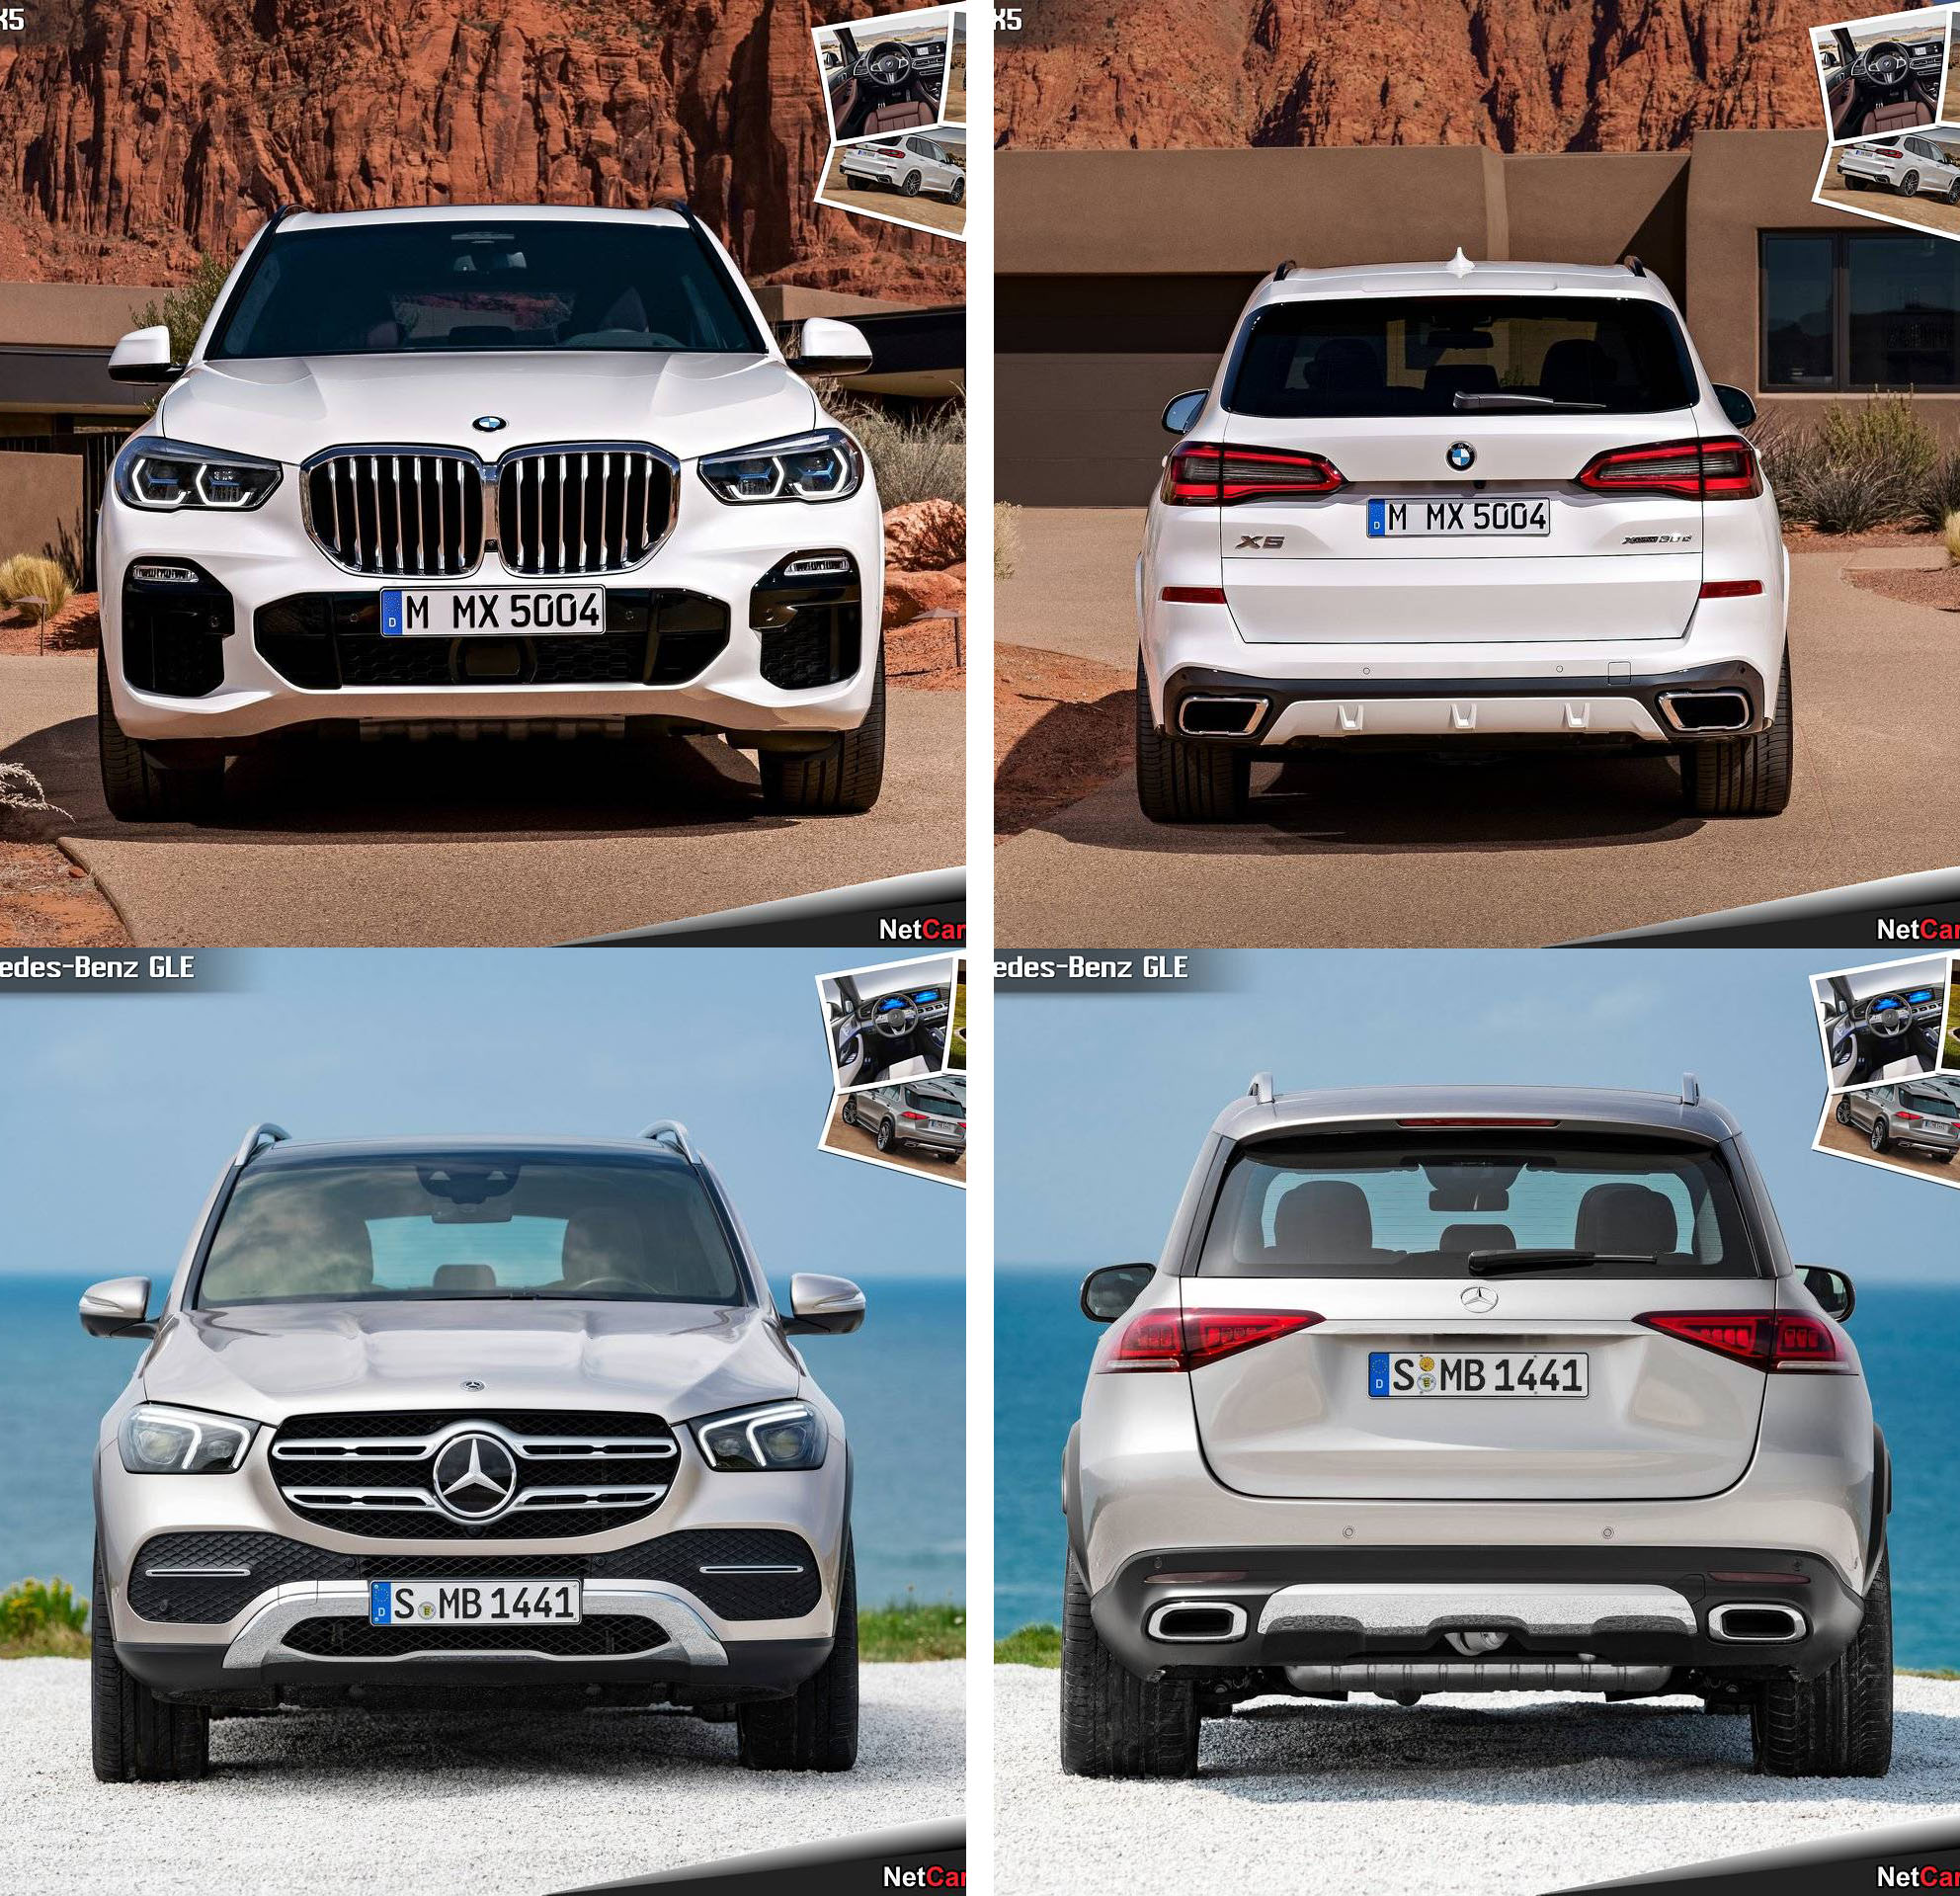 2019 BMW X5 Vs 2020 Mercedes-Benz GLE